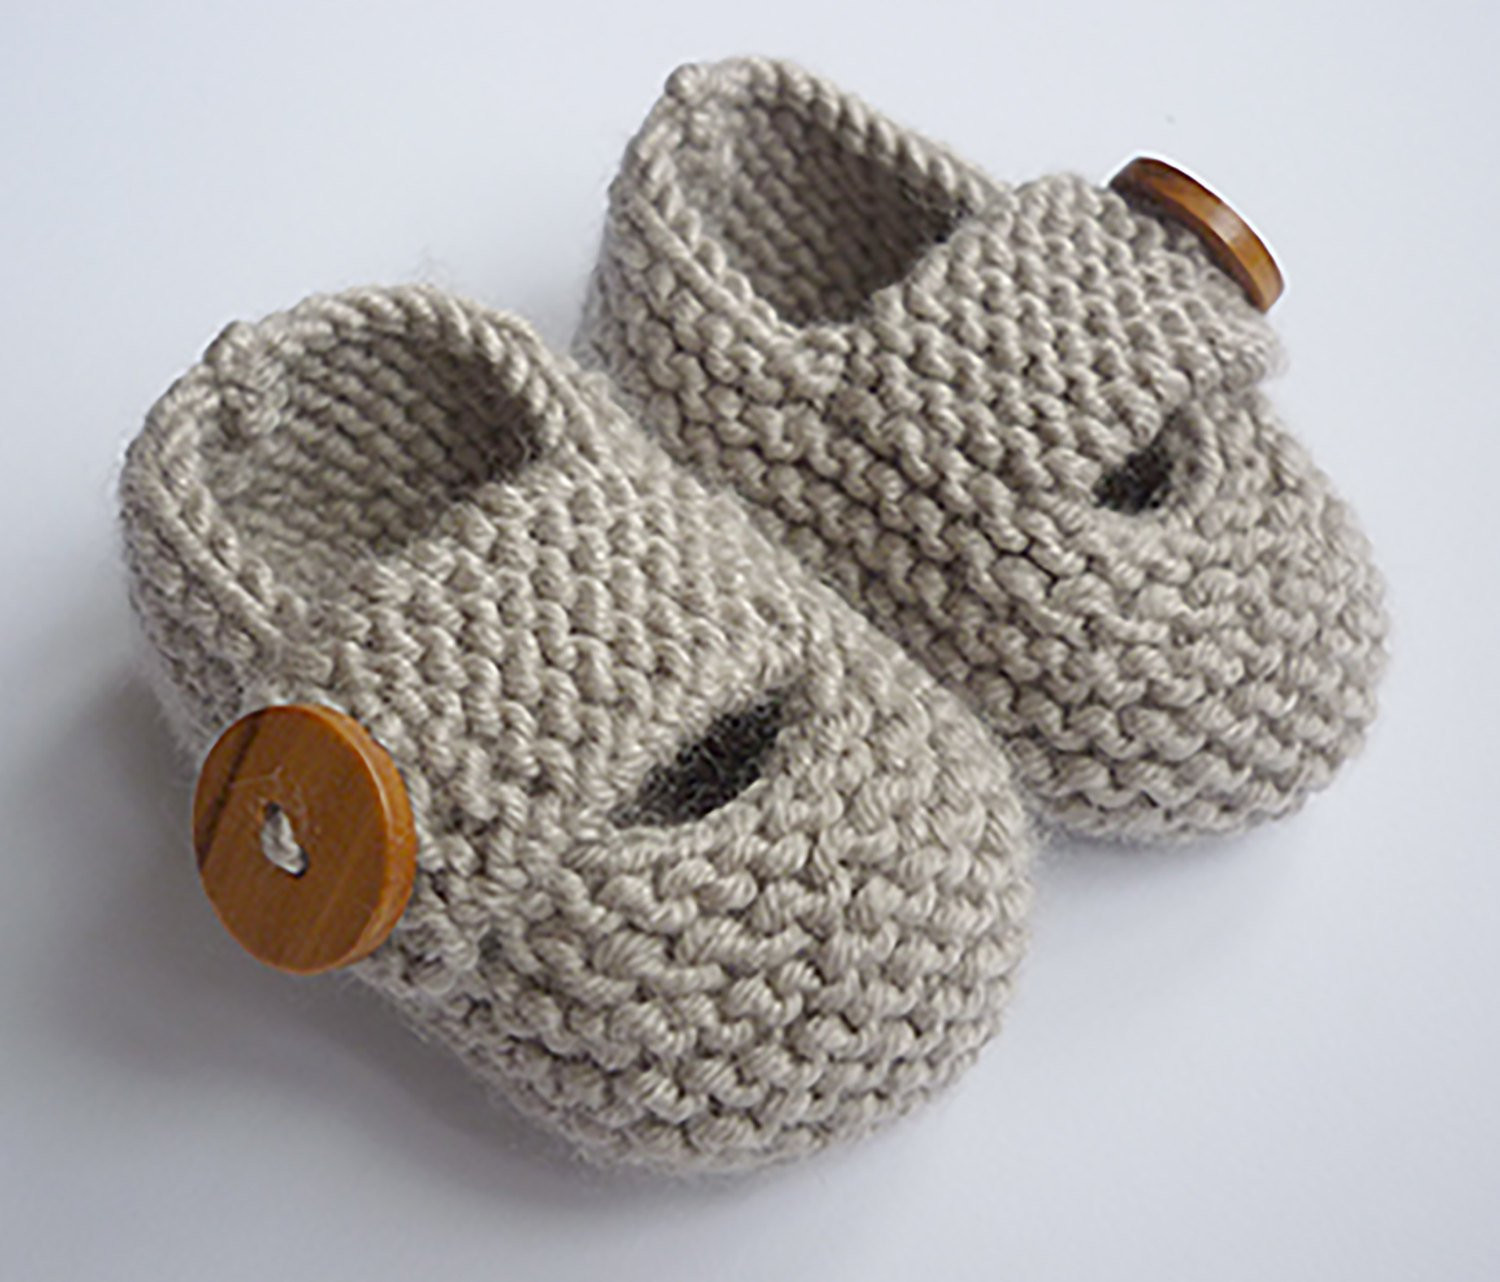 Knitted Baby Shoes Inspirational Baby Booties Knitting Pattern Baby Shoes Pdf Knitting Of Attractive 40 Pics Knitted Baby Shoes